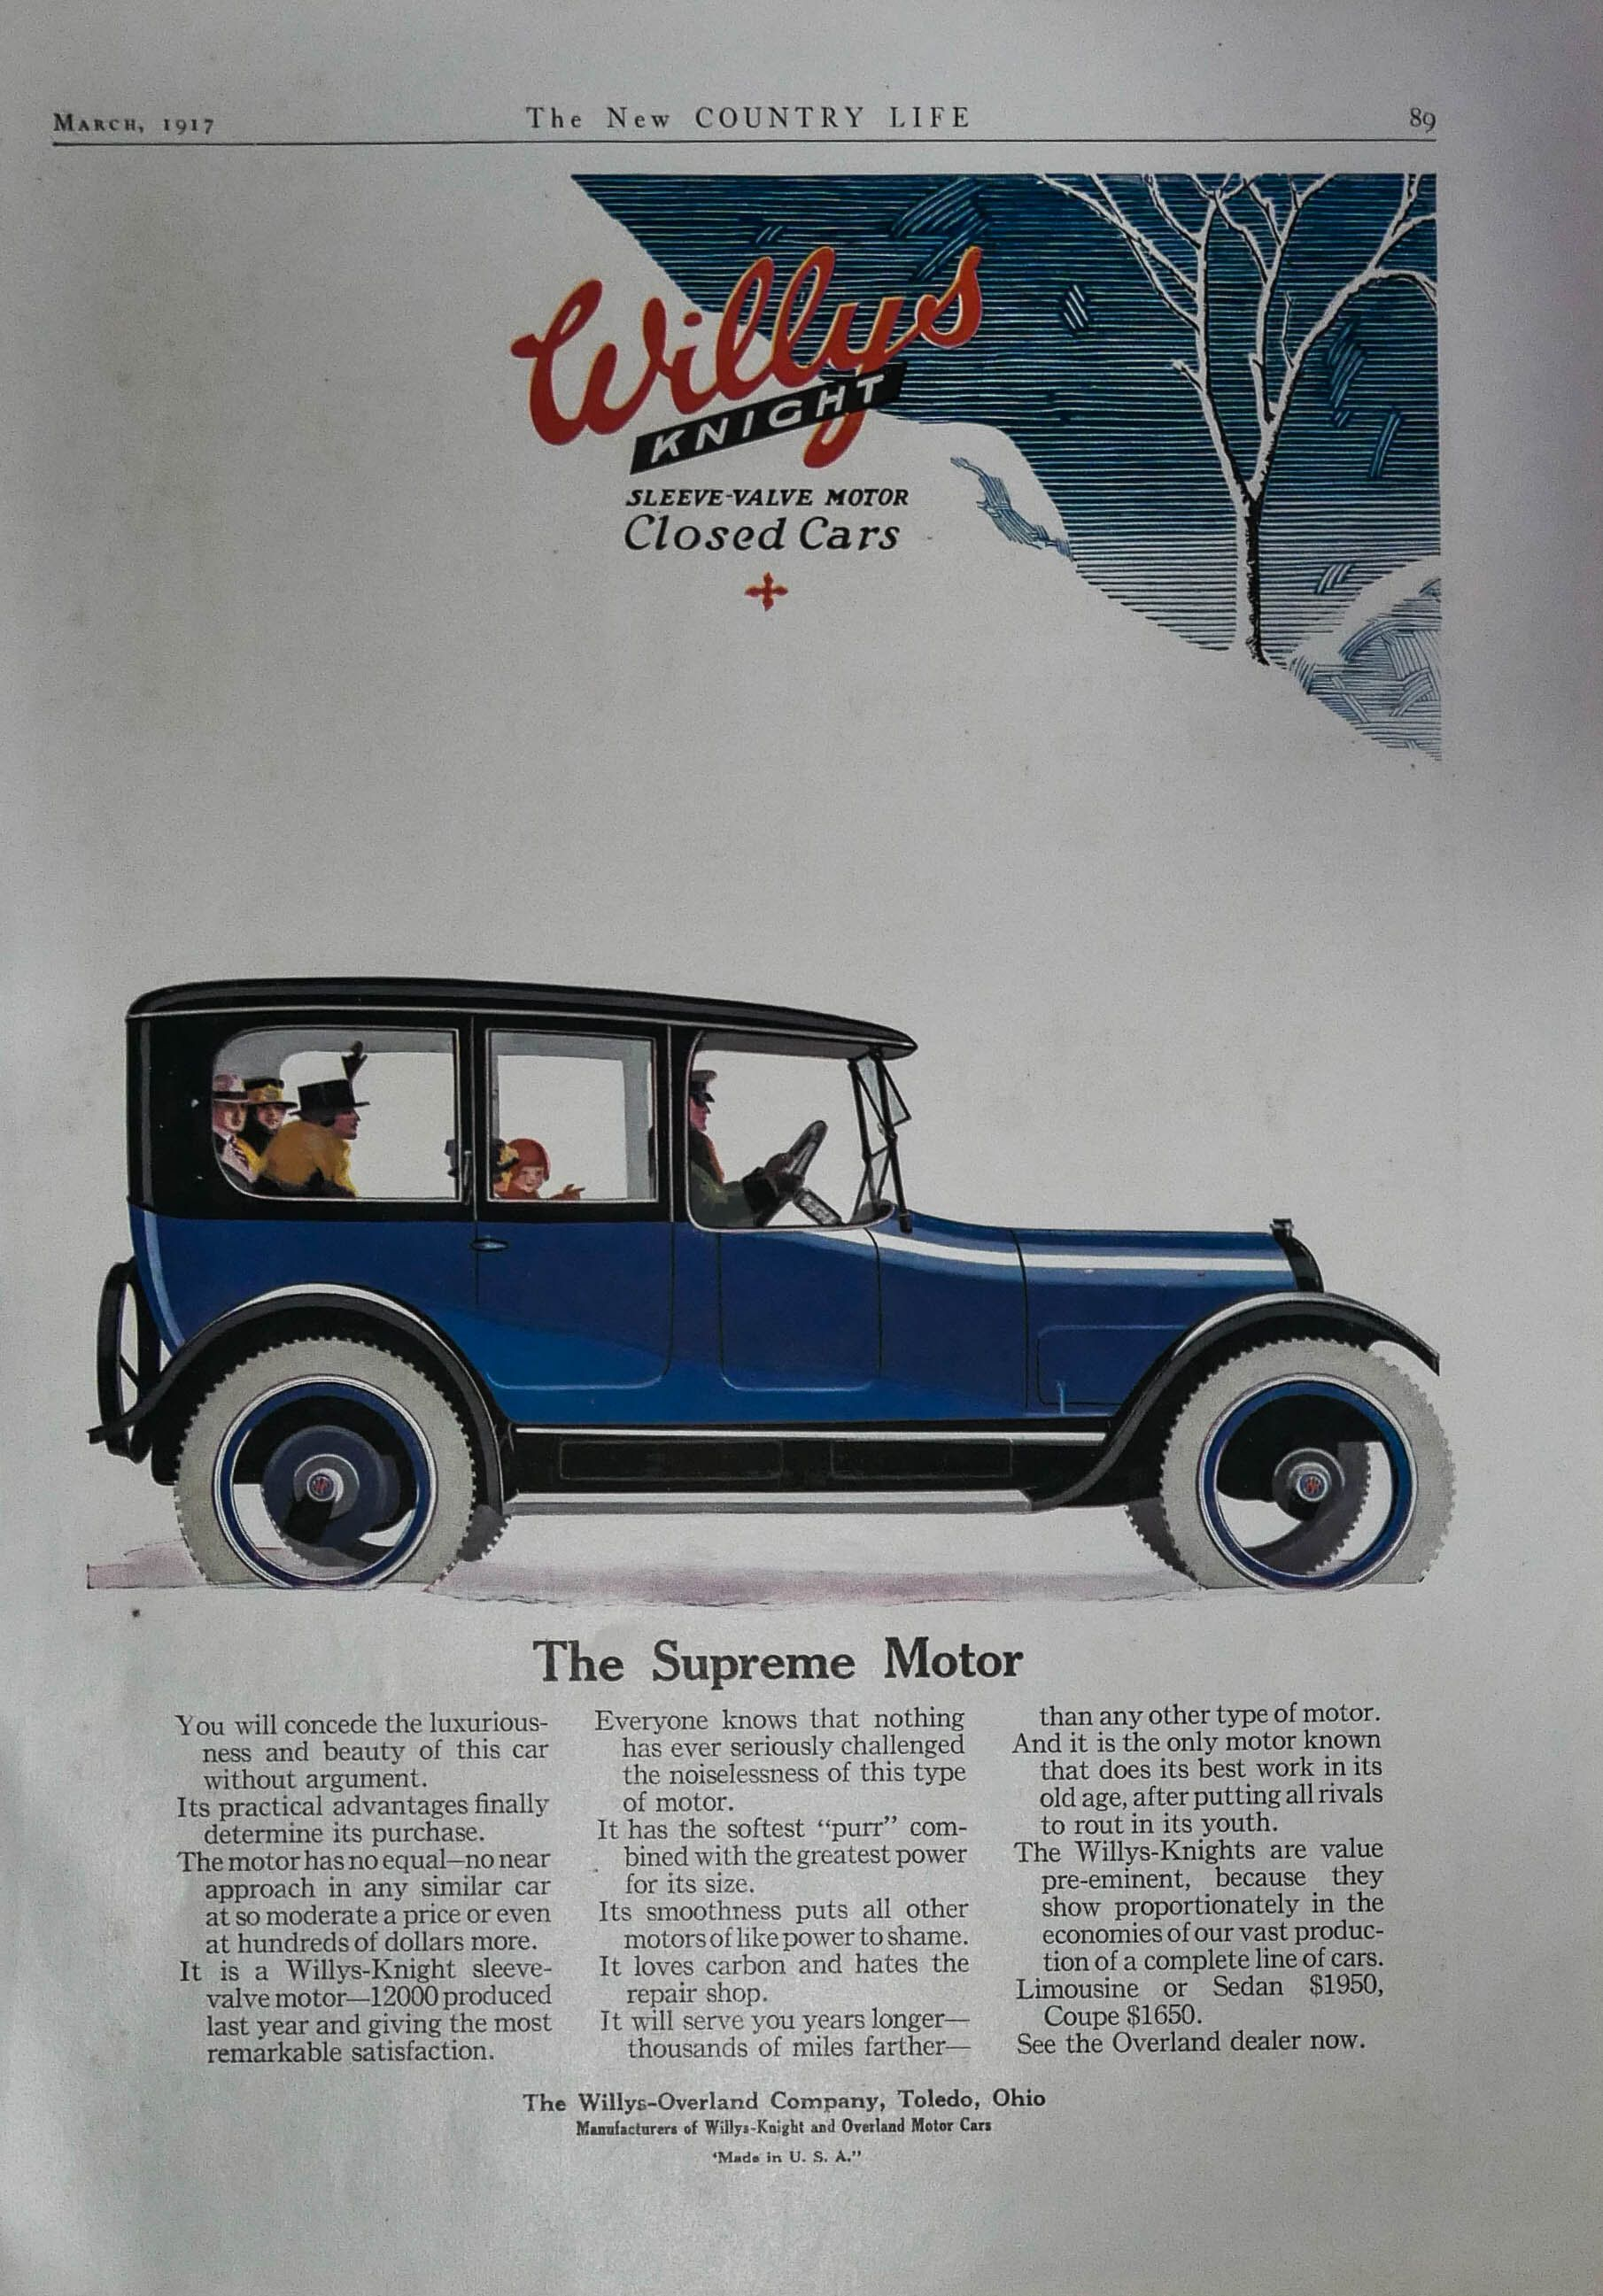 1917 Willys Knight Supreme Motor Car Ad Vintage Automobile By Willys Overland Co Toledo Oh Gorgeous Blue Auto With Chauffeur And Family In 2020 Car Ads Vintage Advertisements Motor Car